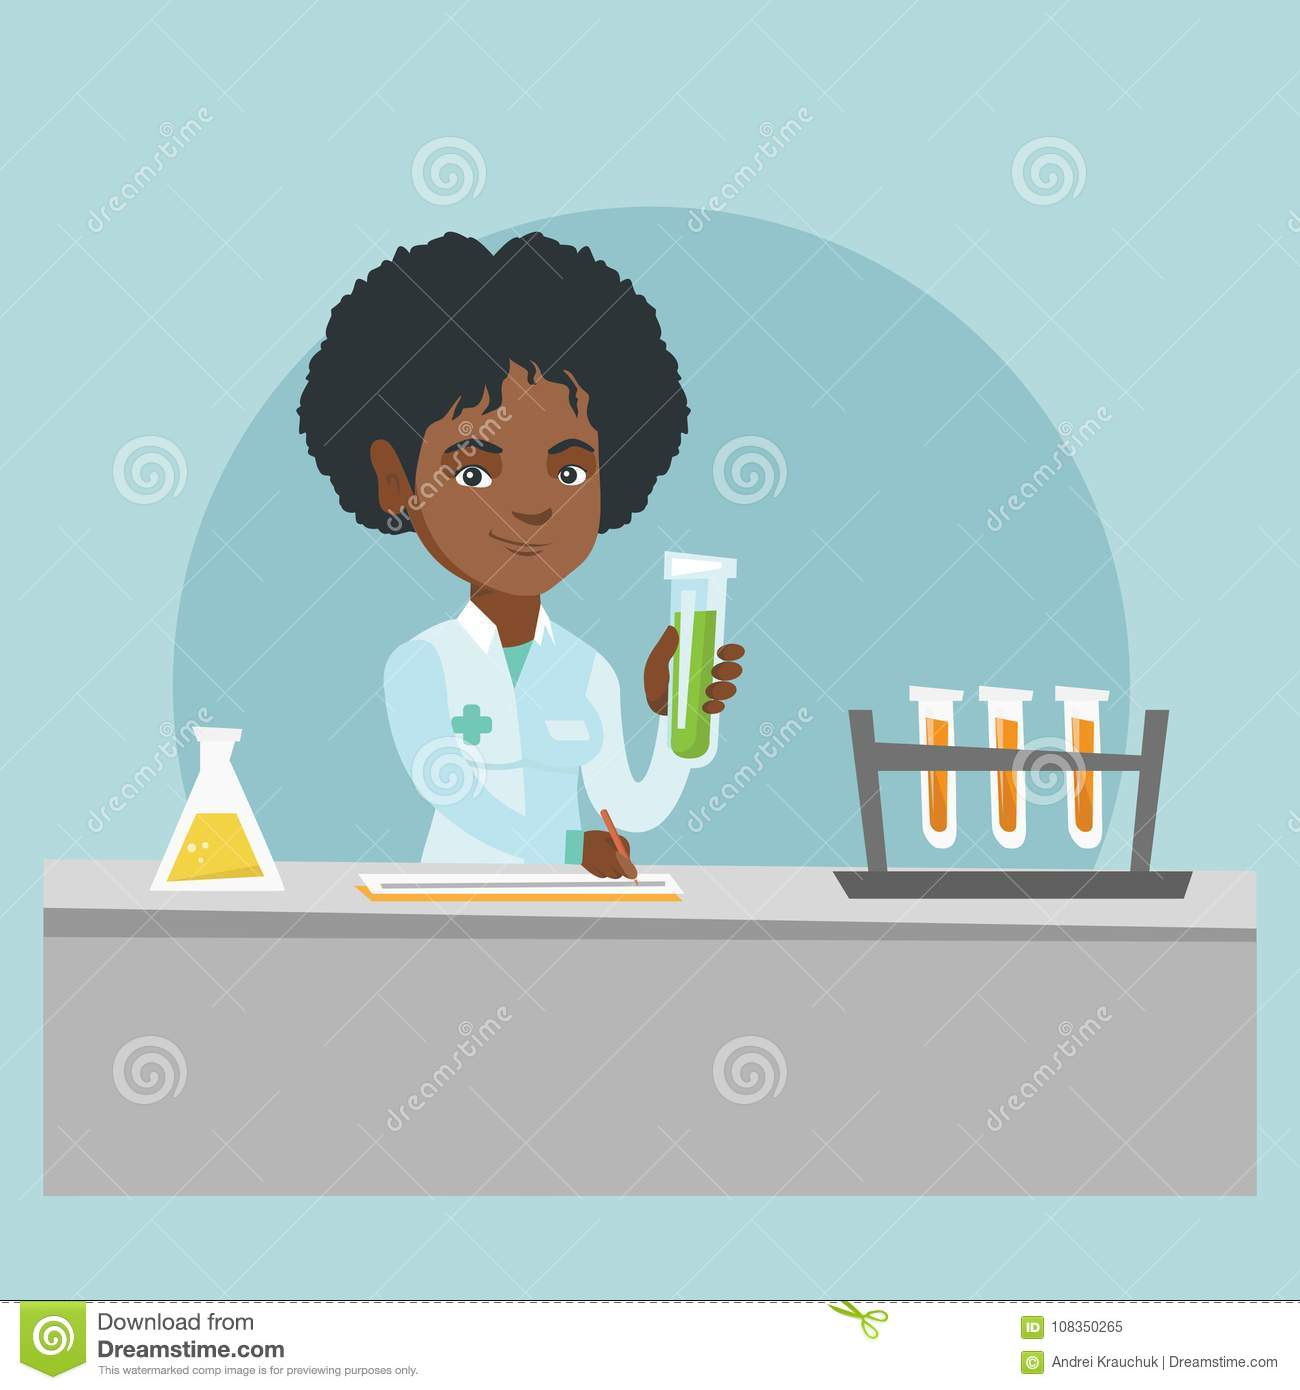 Young African American Laboratory Assistant Working With A Test Tube And Taking Some Notes Female Laboratory Assistant Analyzing Liquid In A Test Tube